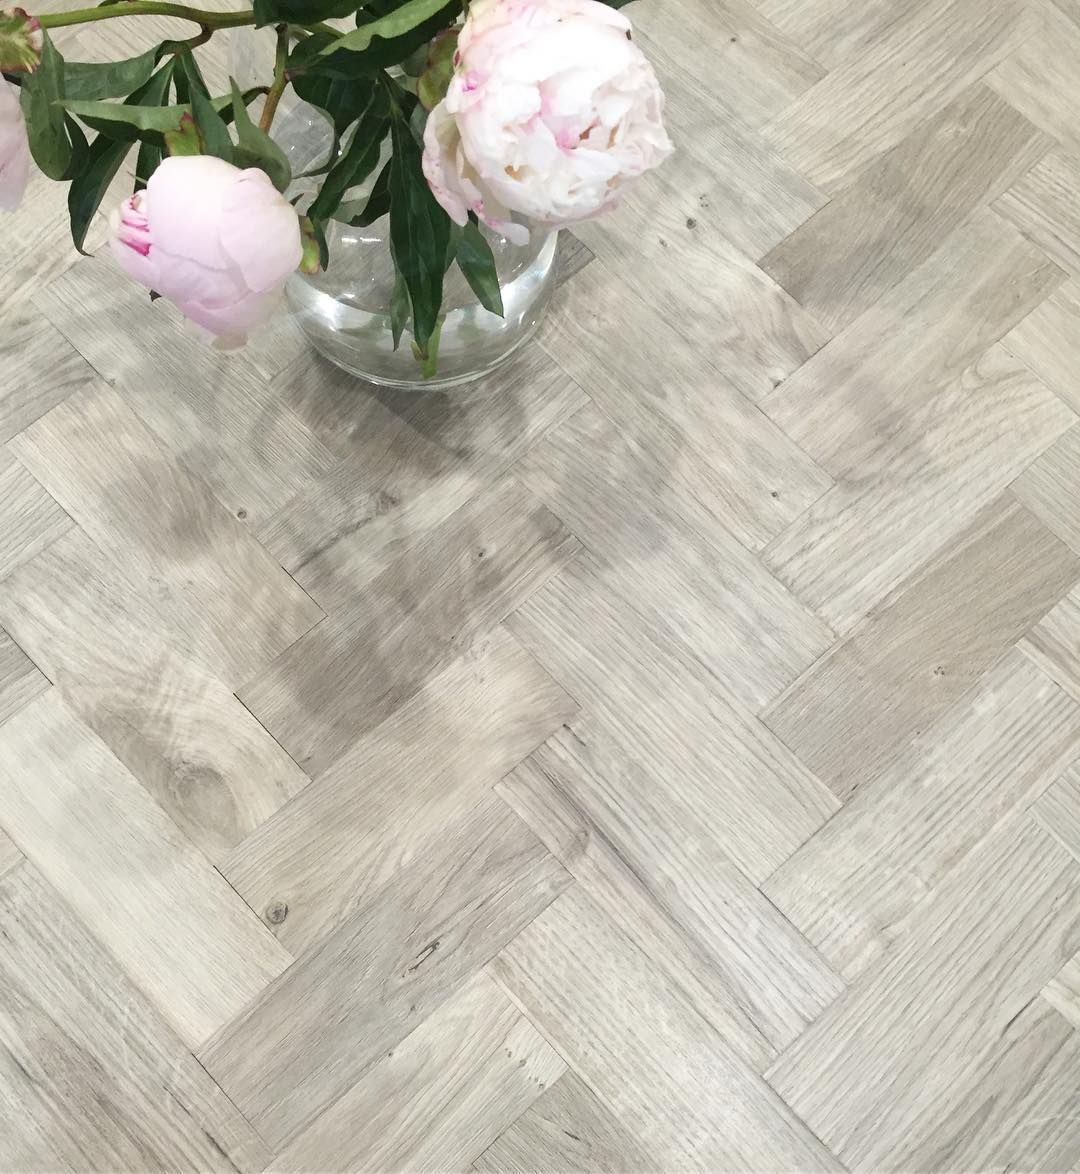 101 Likes 6 Comments Gem My Little House On The Prairie On Instagram A Flash Of Peonies And Some Gorgeous Herringbone In 2020 Herringbone Floor Flooring Amtico